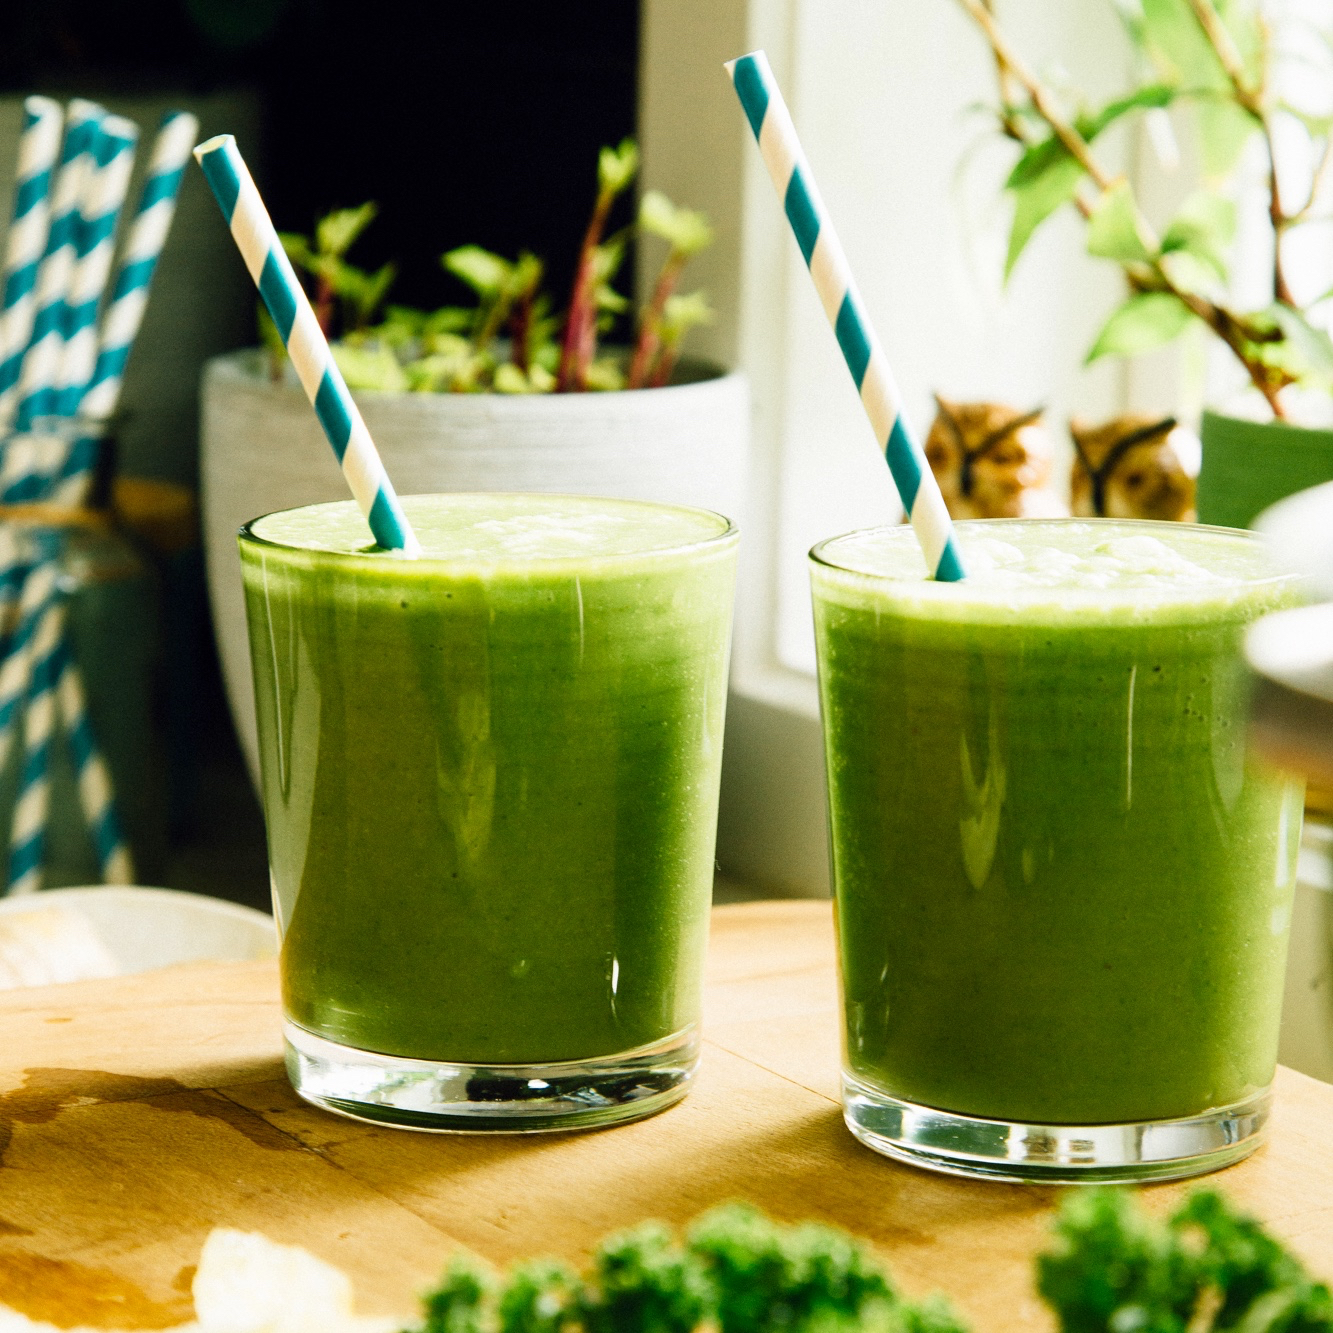 My Go-To Energizing Green Smoothie